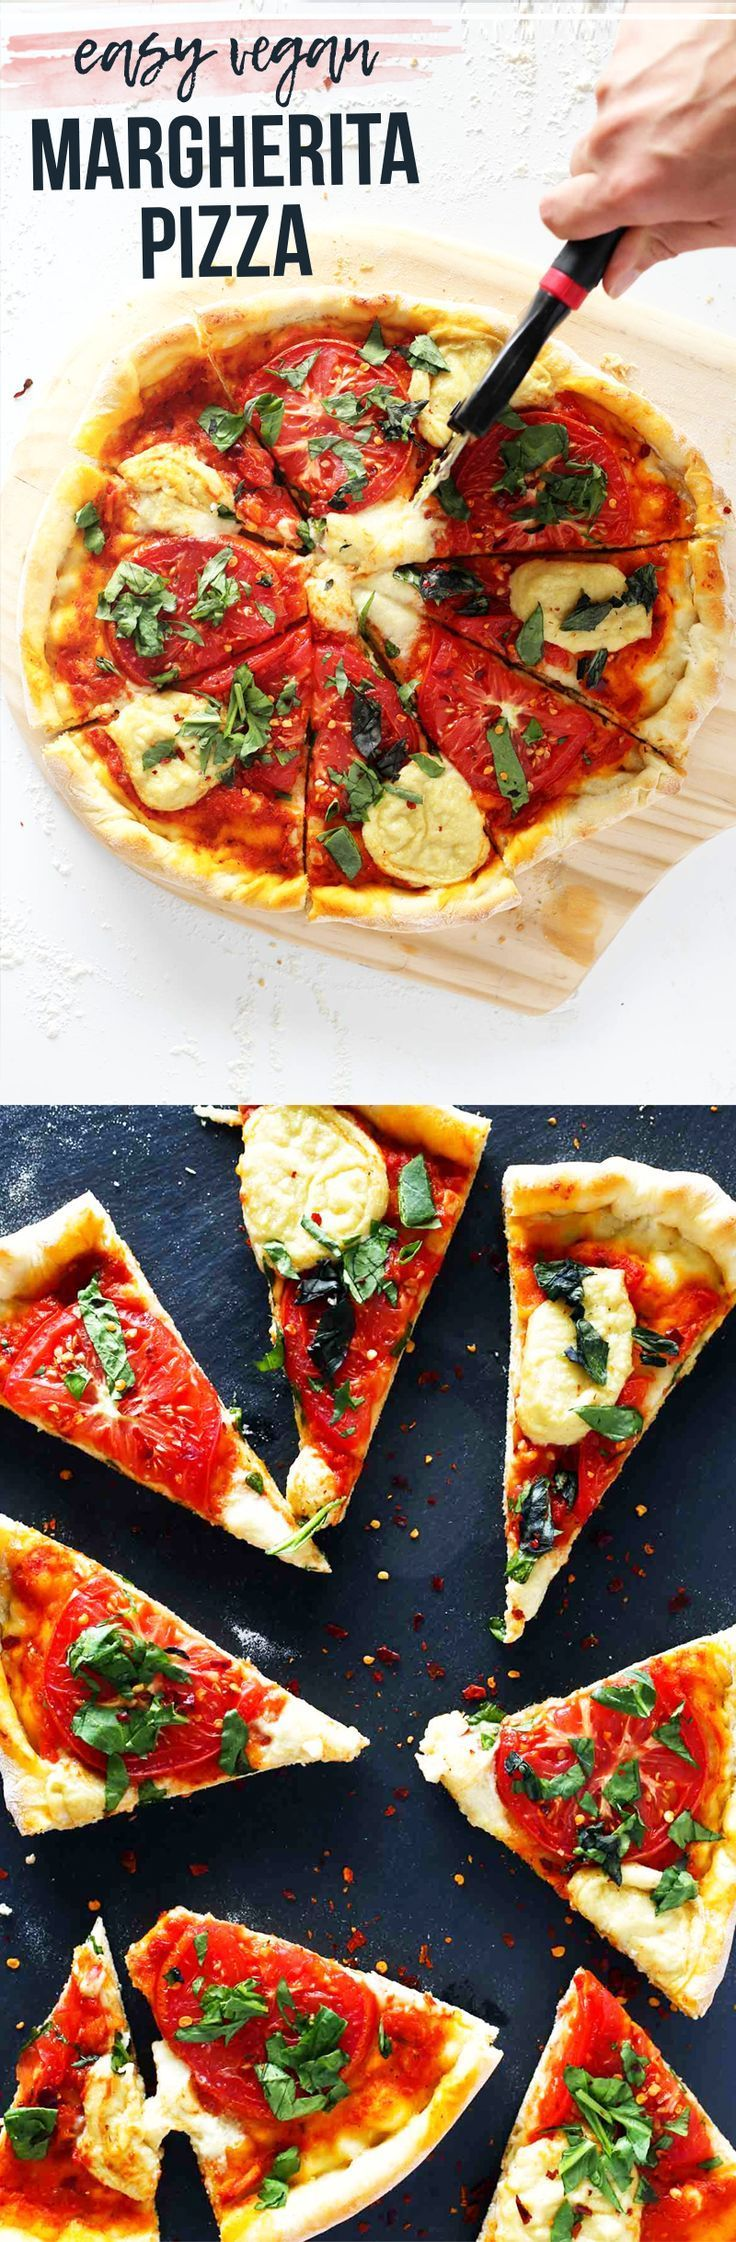 Delicious vegan pizza - margherita style. Made with homemade cashew mozzarella, marinara sauce, and vegan dough. Topped with fresh tomatoes and fresh basil.